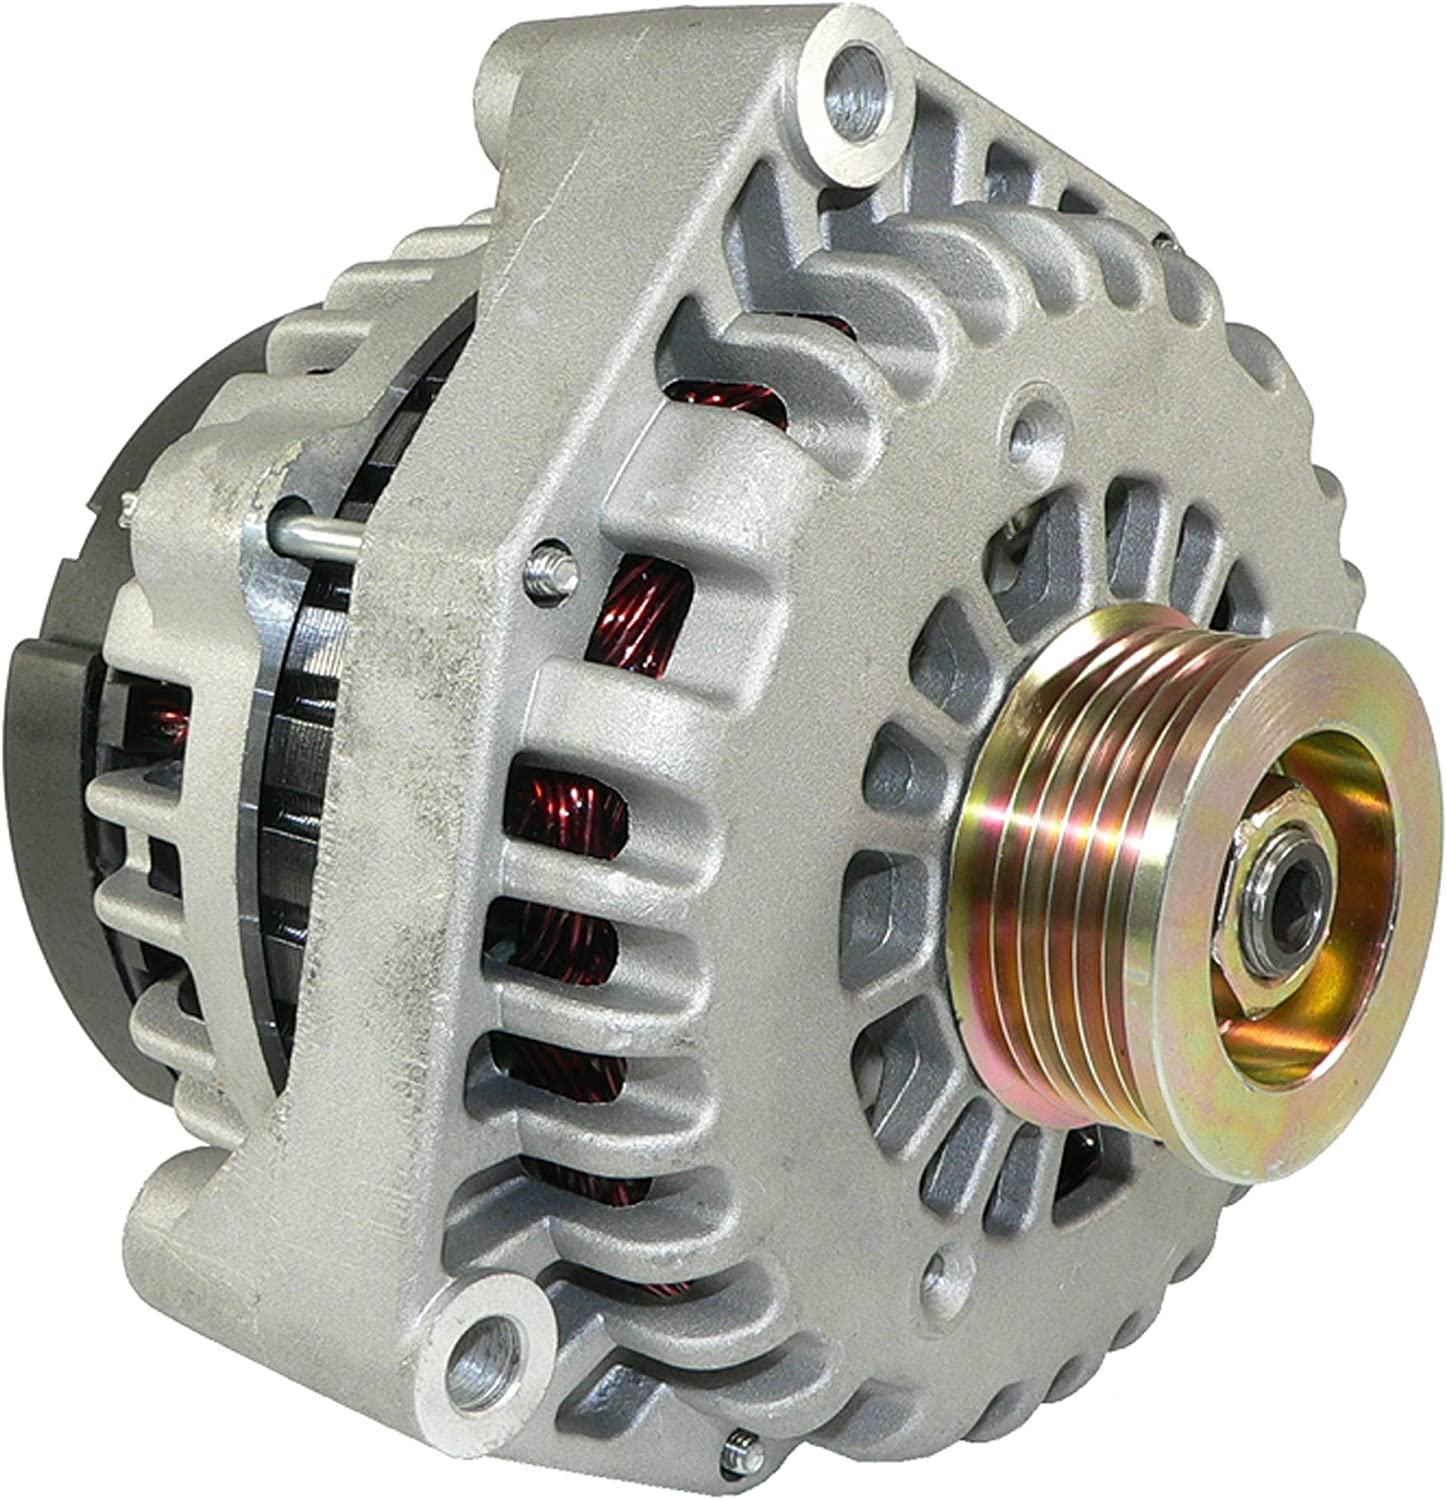 DB Electrical ADR0217 New Alternator 4.3L 4.3 4.8L 4.8 5.3L 5.3 6.0L 6.0 1500 2500 Silverado Sierra Pickup 99 00 01 02 1999 2000 2001 2002 112853 321-1749 321-1803 321-1813 321-1816 321-2123 10464405